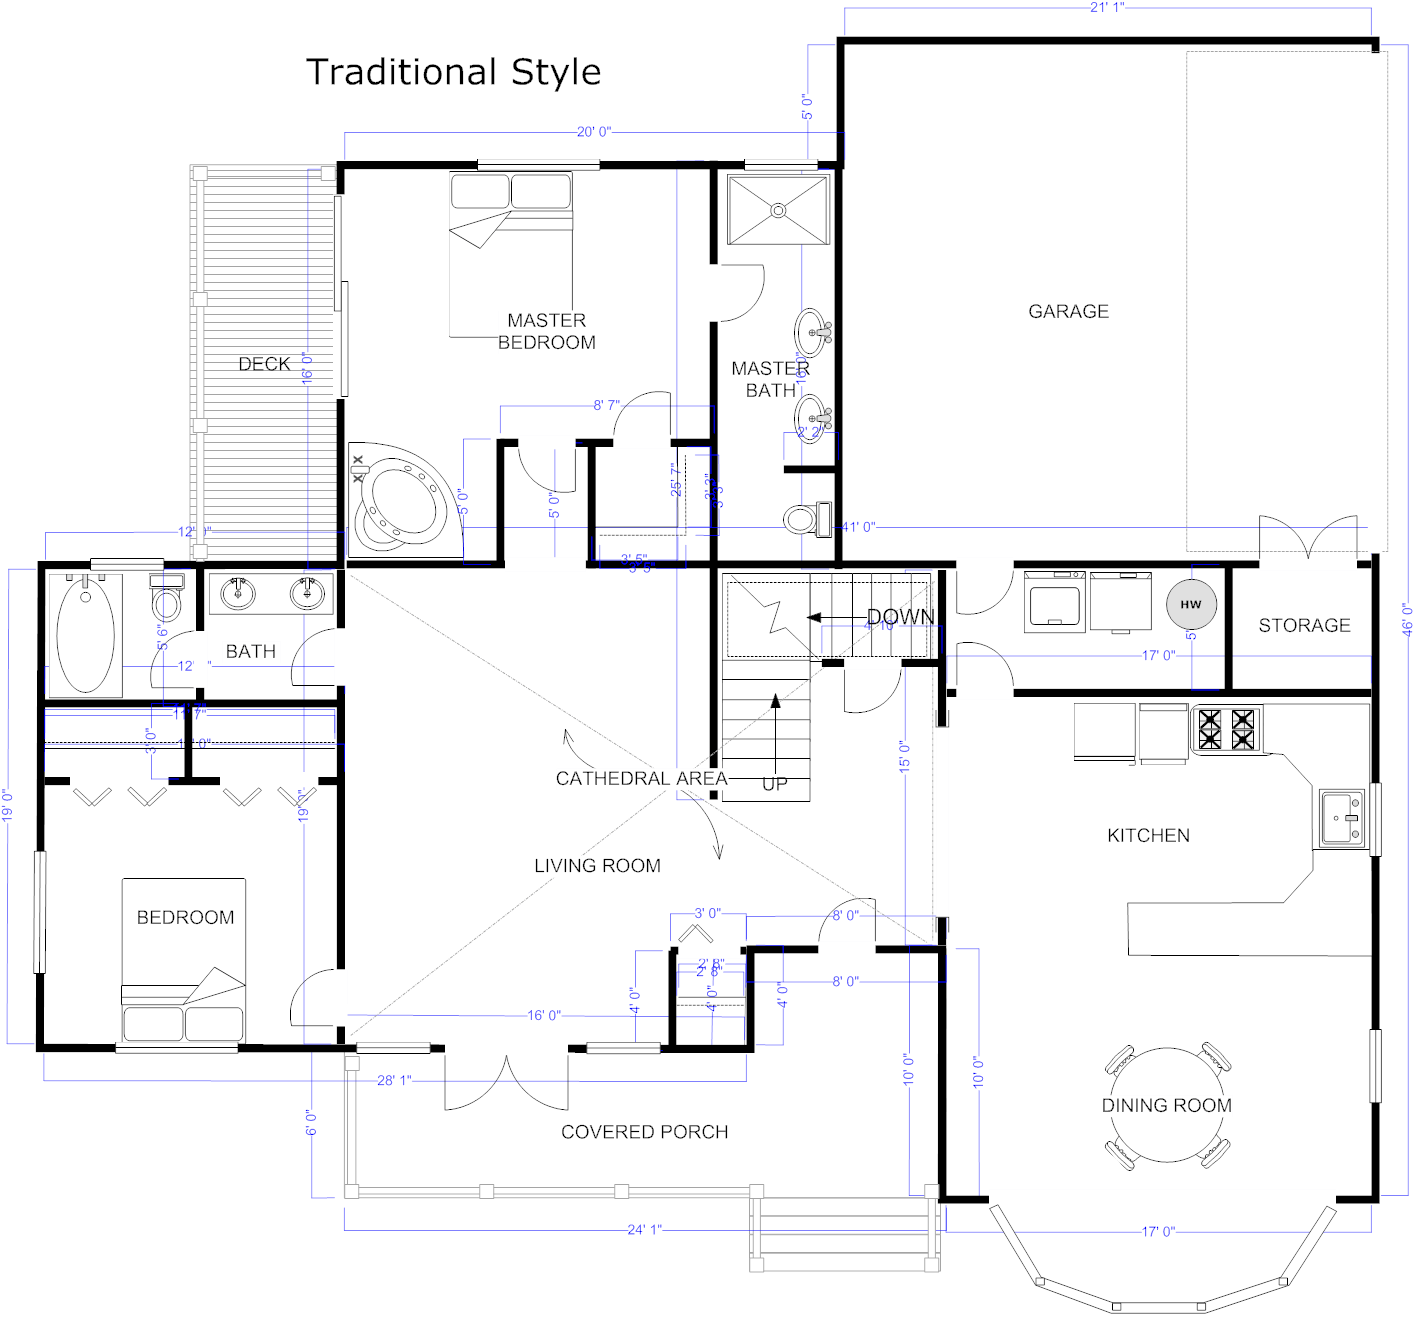 Home design templates etamemibawa home design templates malvernweather